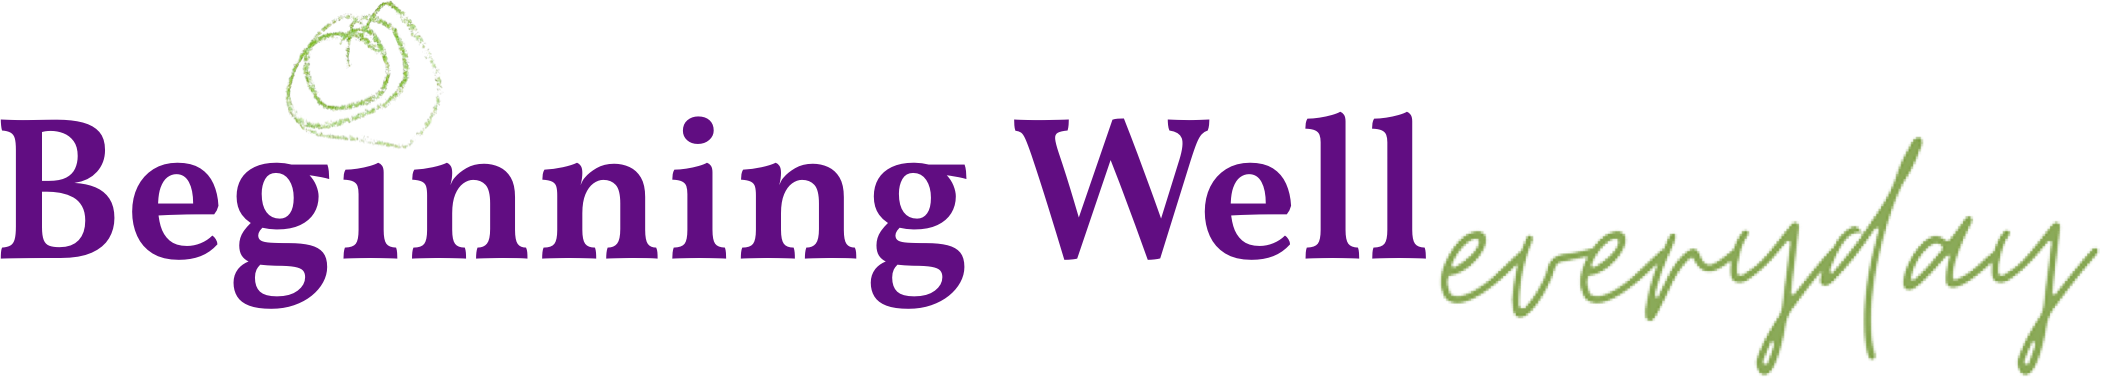 Beginning Well Everyday Logo